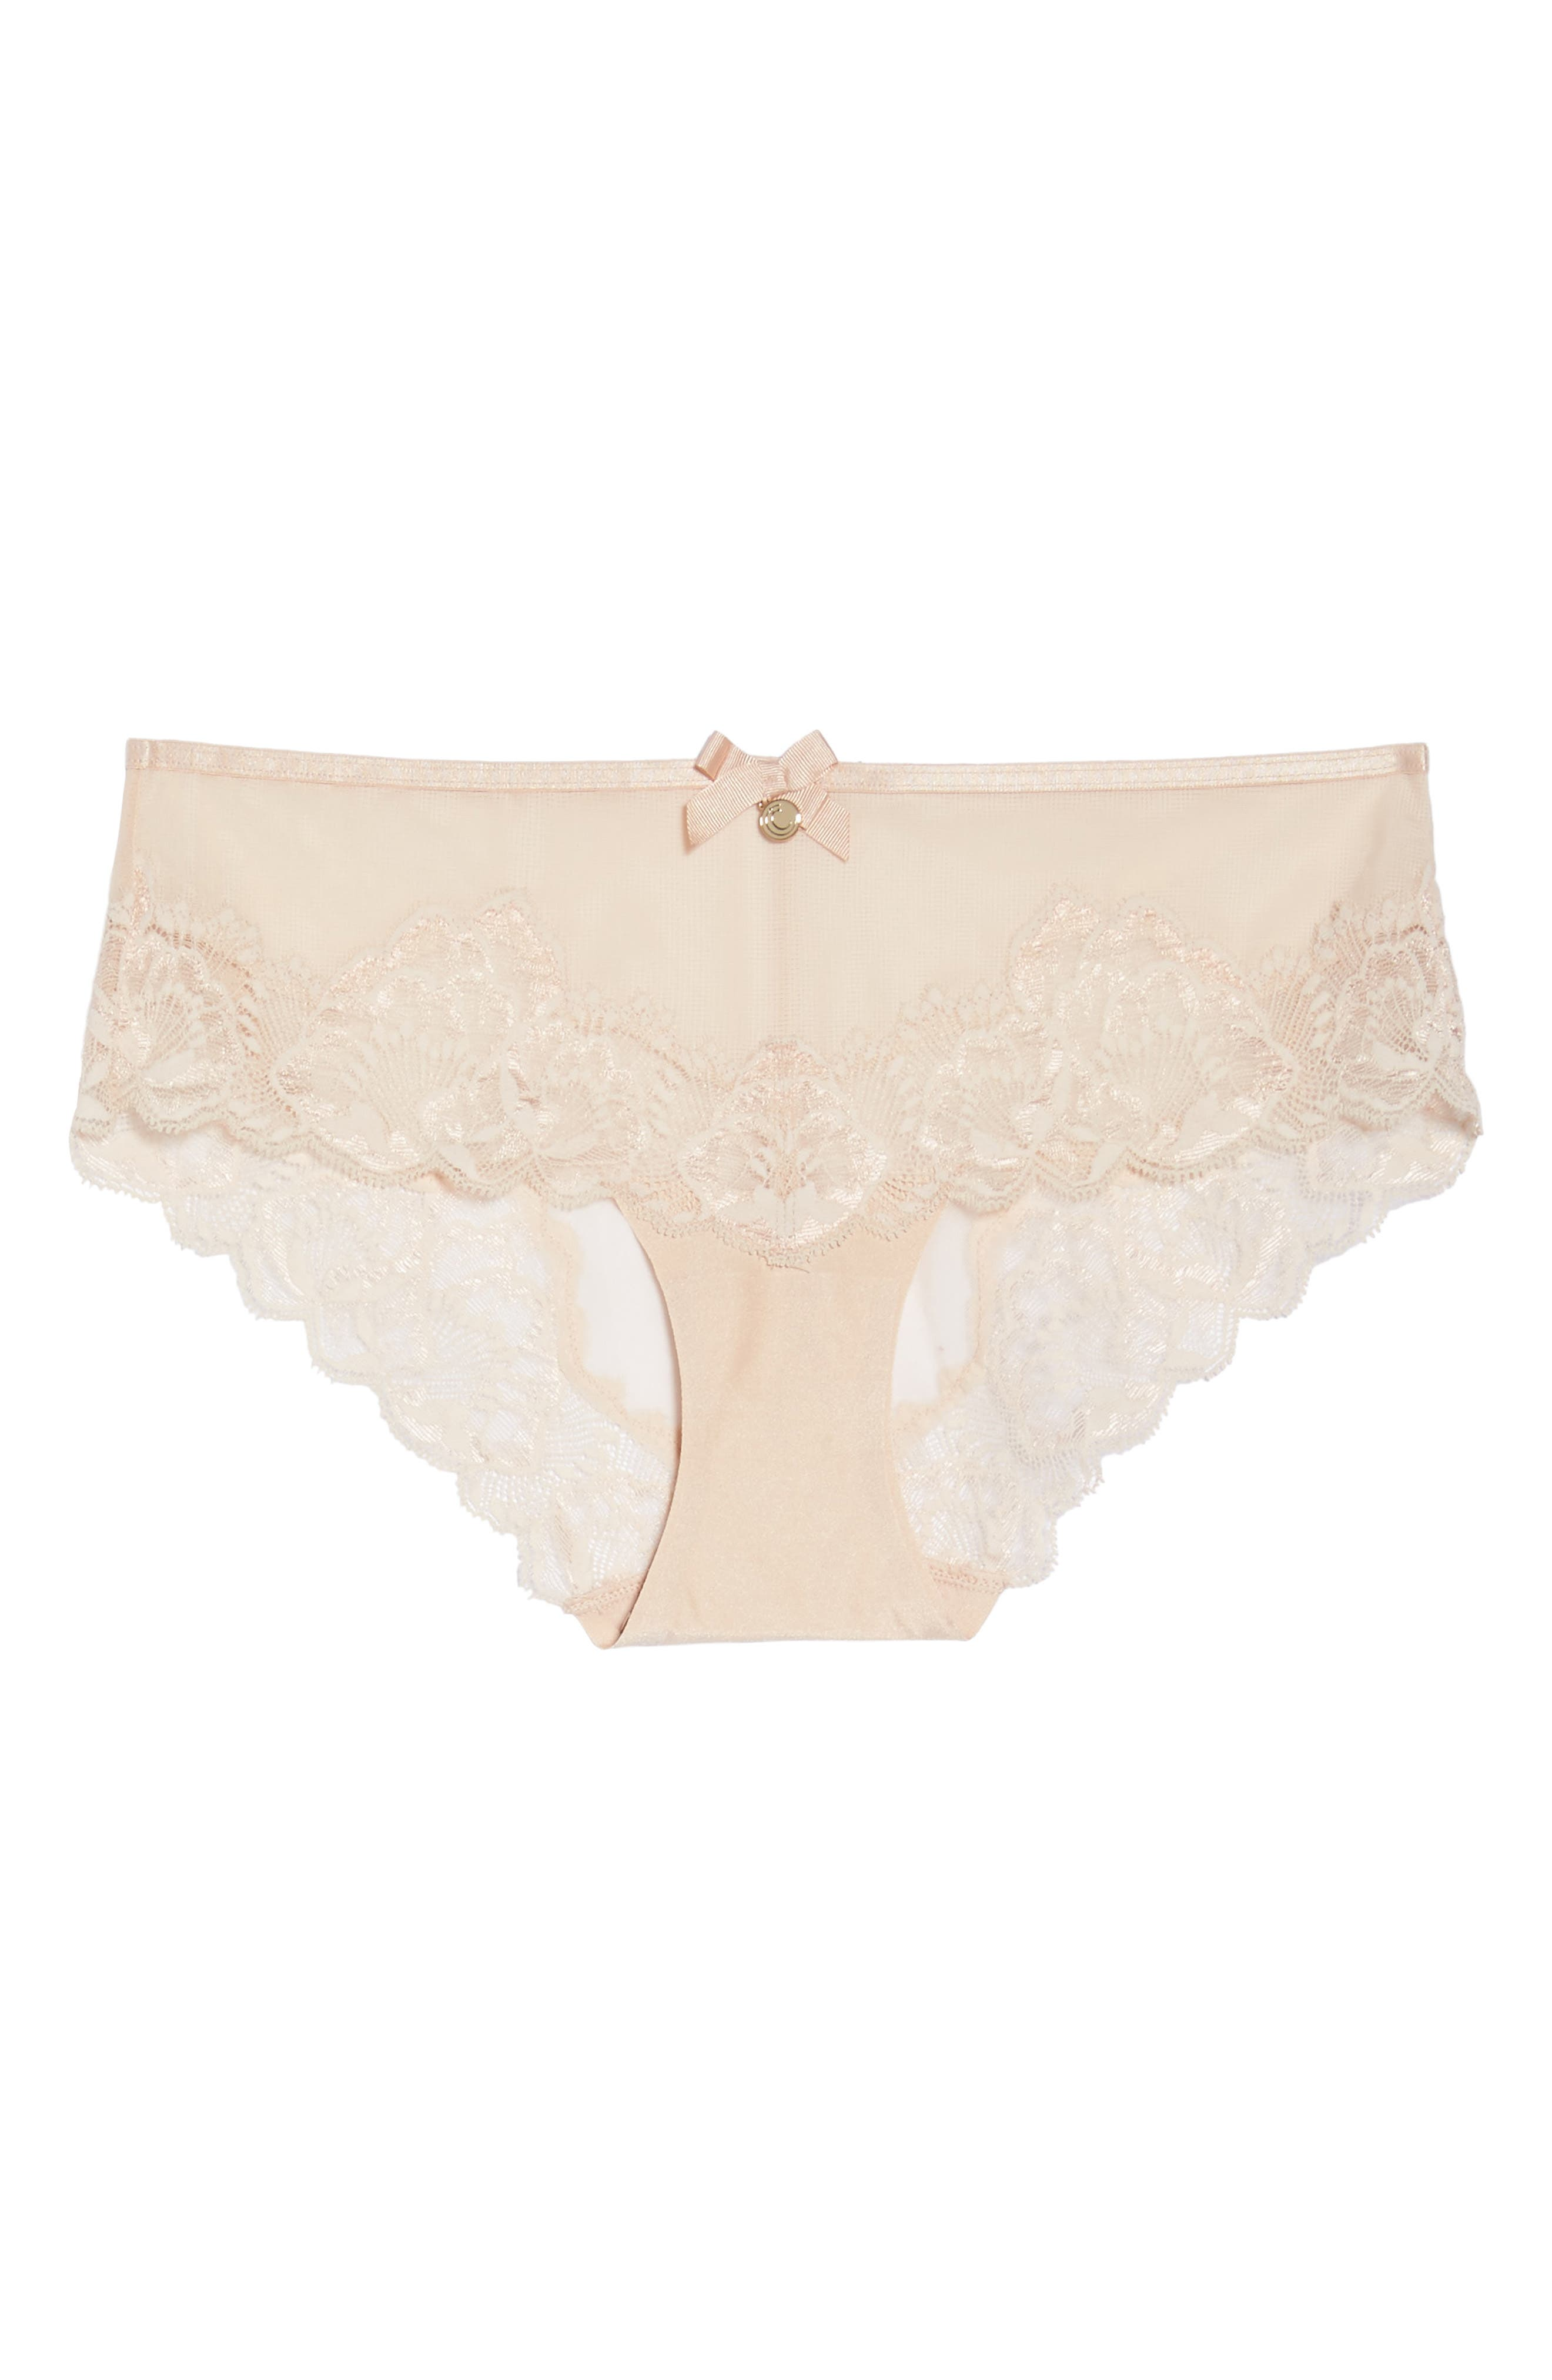 Orangerie Hipster Panties,                             Alternate thumbnail 4, color,                             Skin Rose